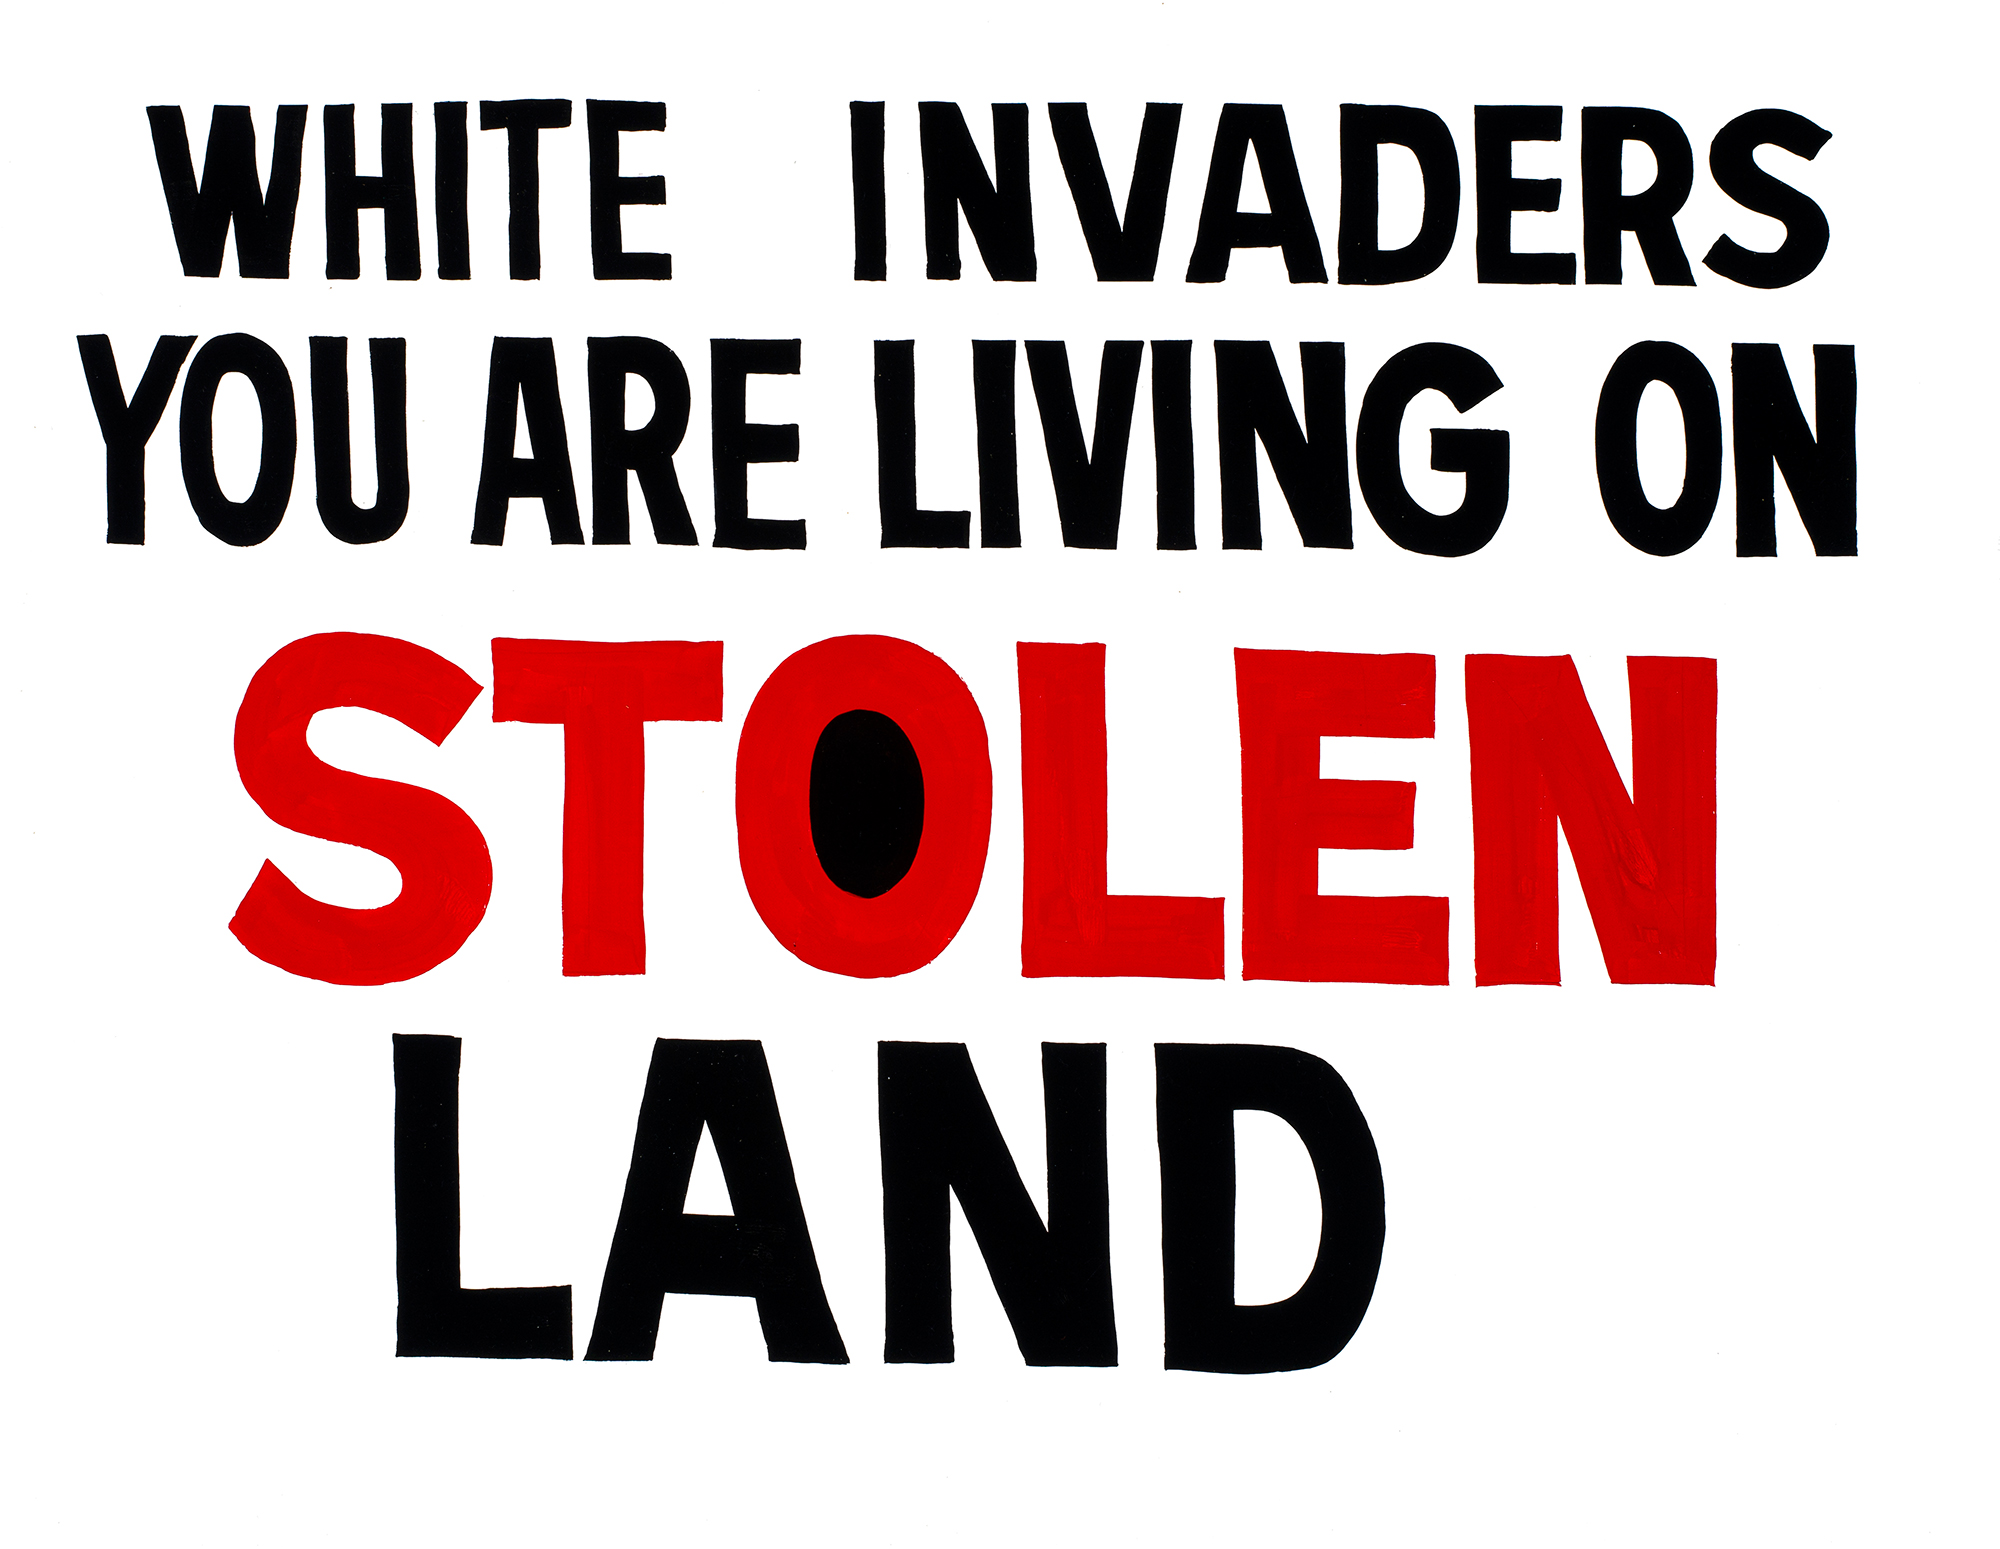 richard-bell-white-invaders-you-are-living-on-stolen-land-2014-synthetic-polymer-paint-on-board-90-x-120_web